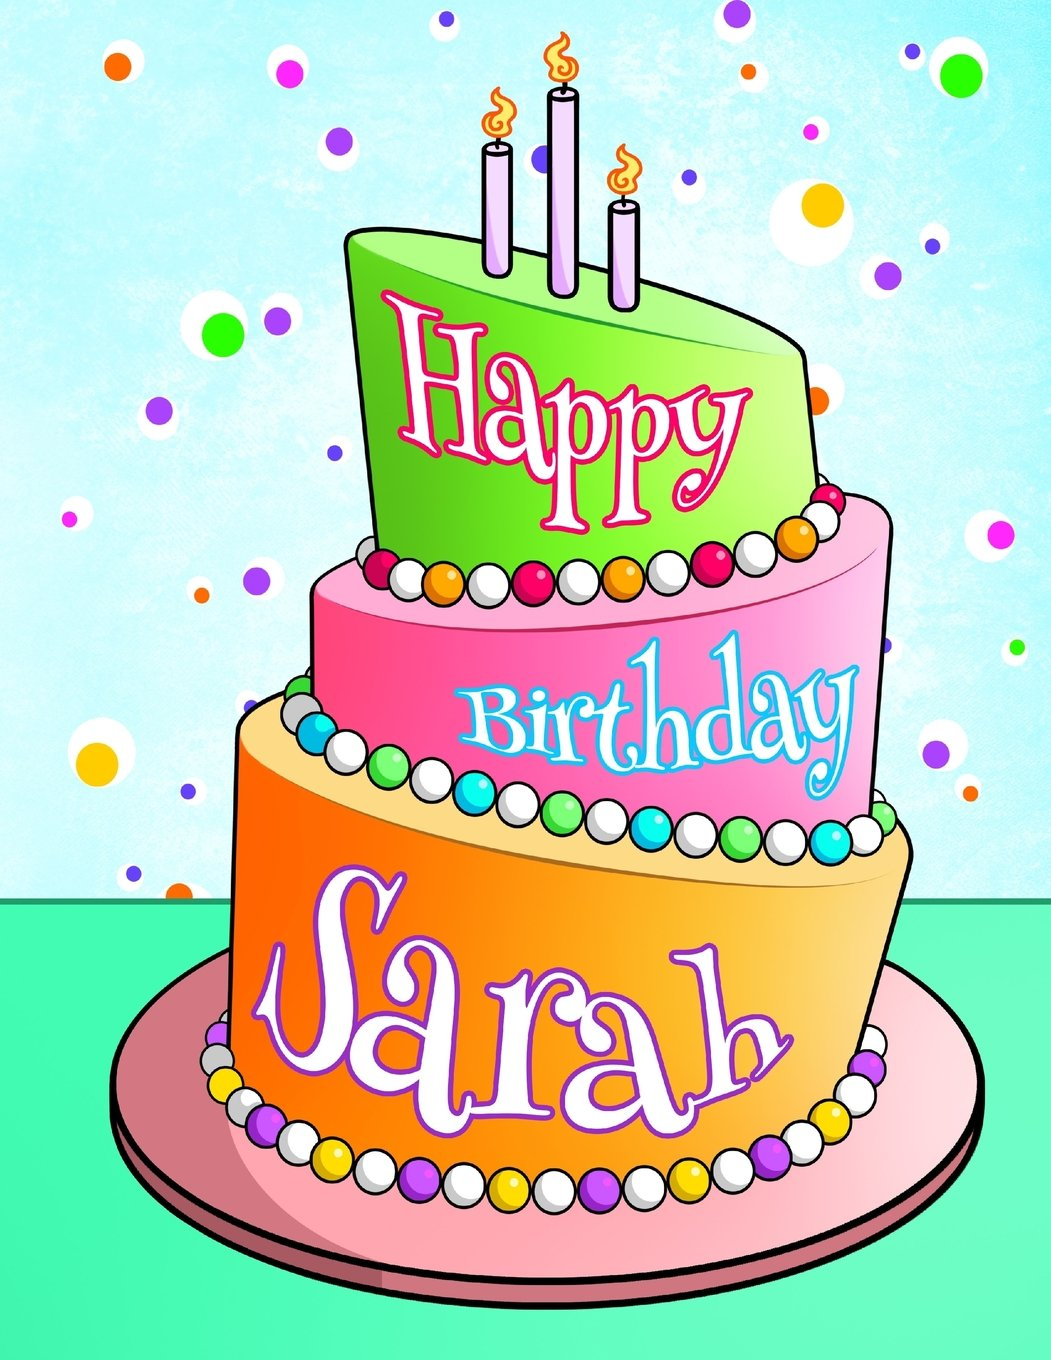 Happy Birthday Sarah Personalized Book With Name Journal